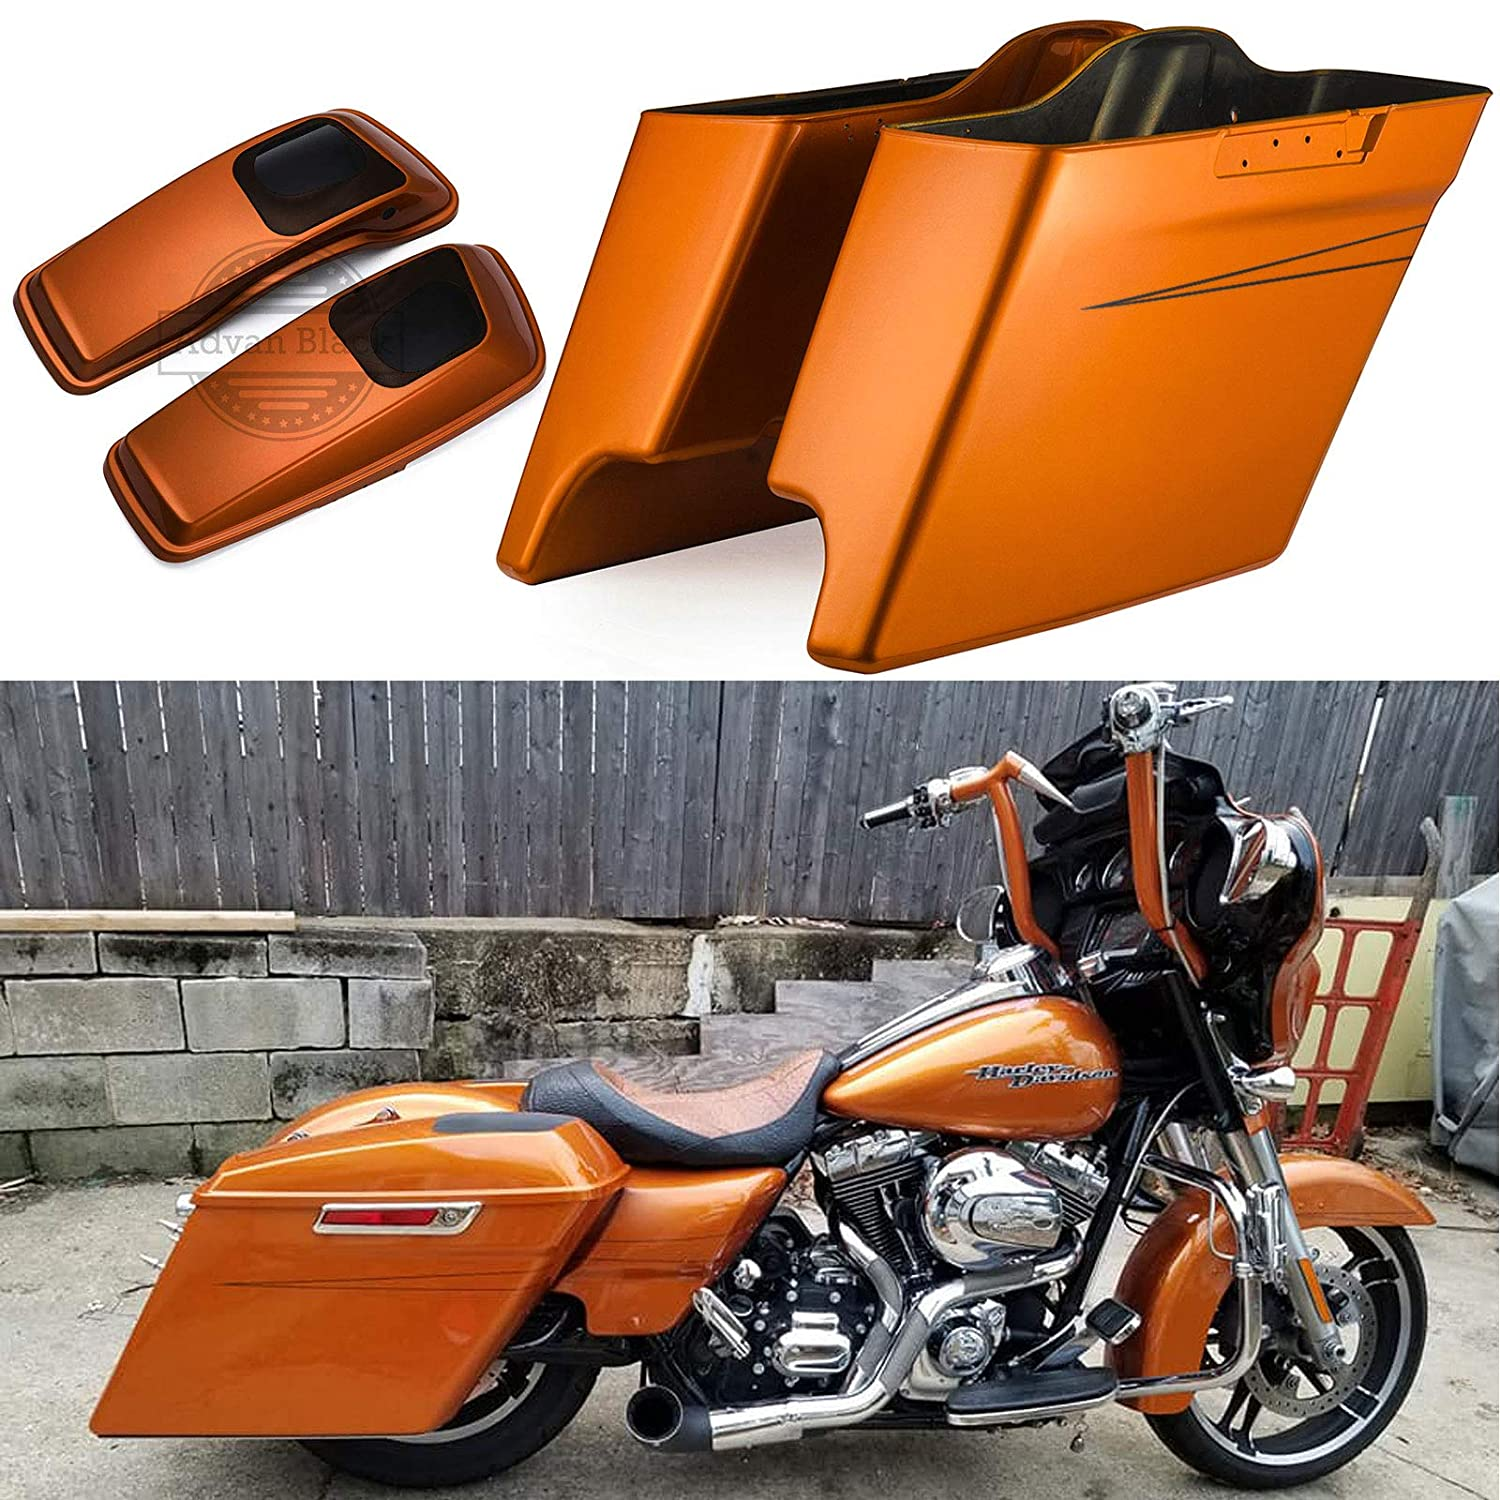 Rubber Grommet Support Cushion Saddle Bag For Harley 14-17 Touring Road King Electra Glide Flt Flht Flhtcu Flhrc Home